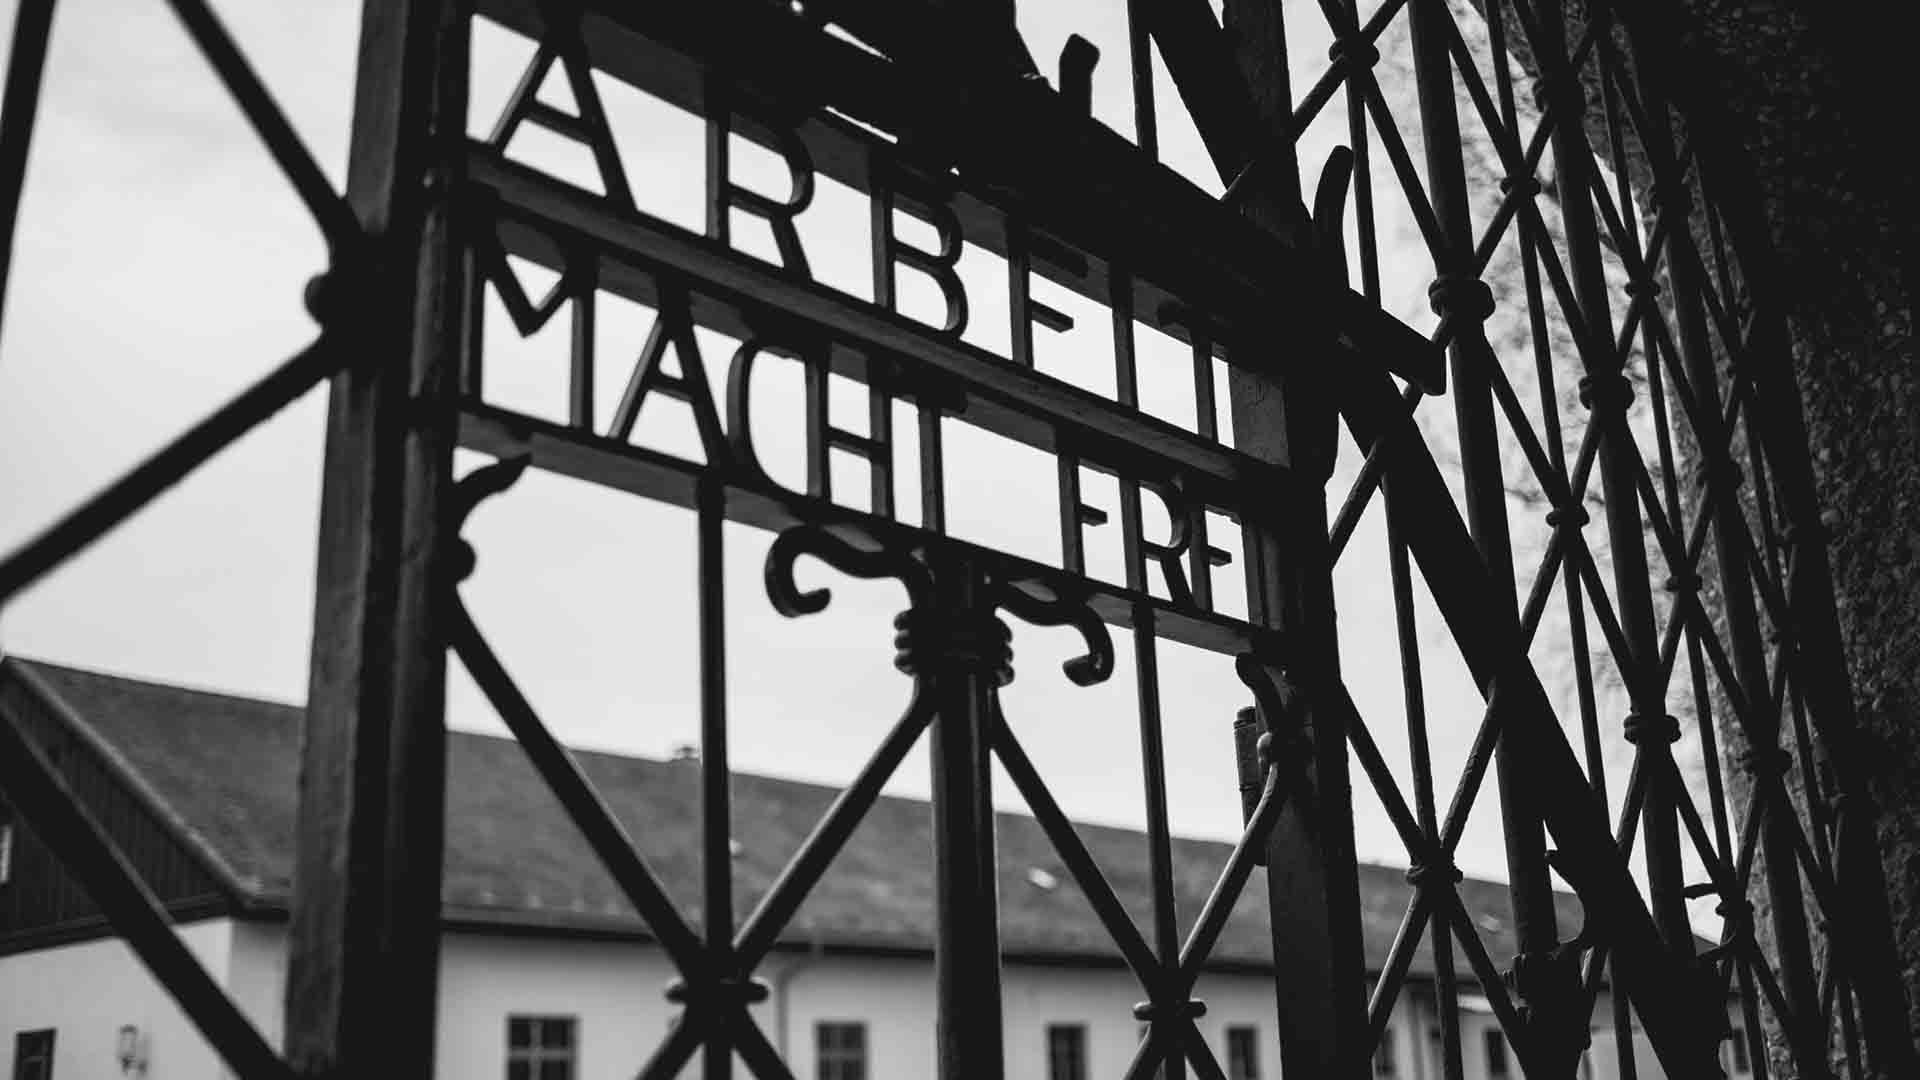 9 Things You Should Know About the Holocaust